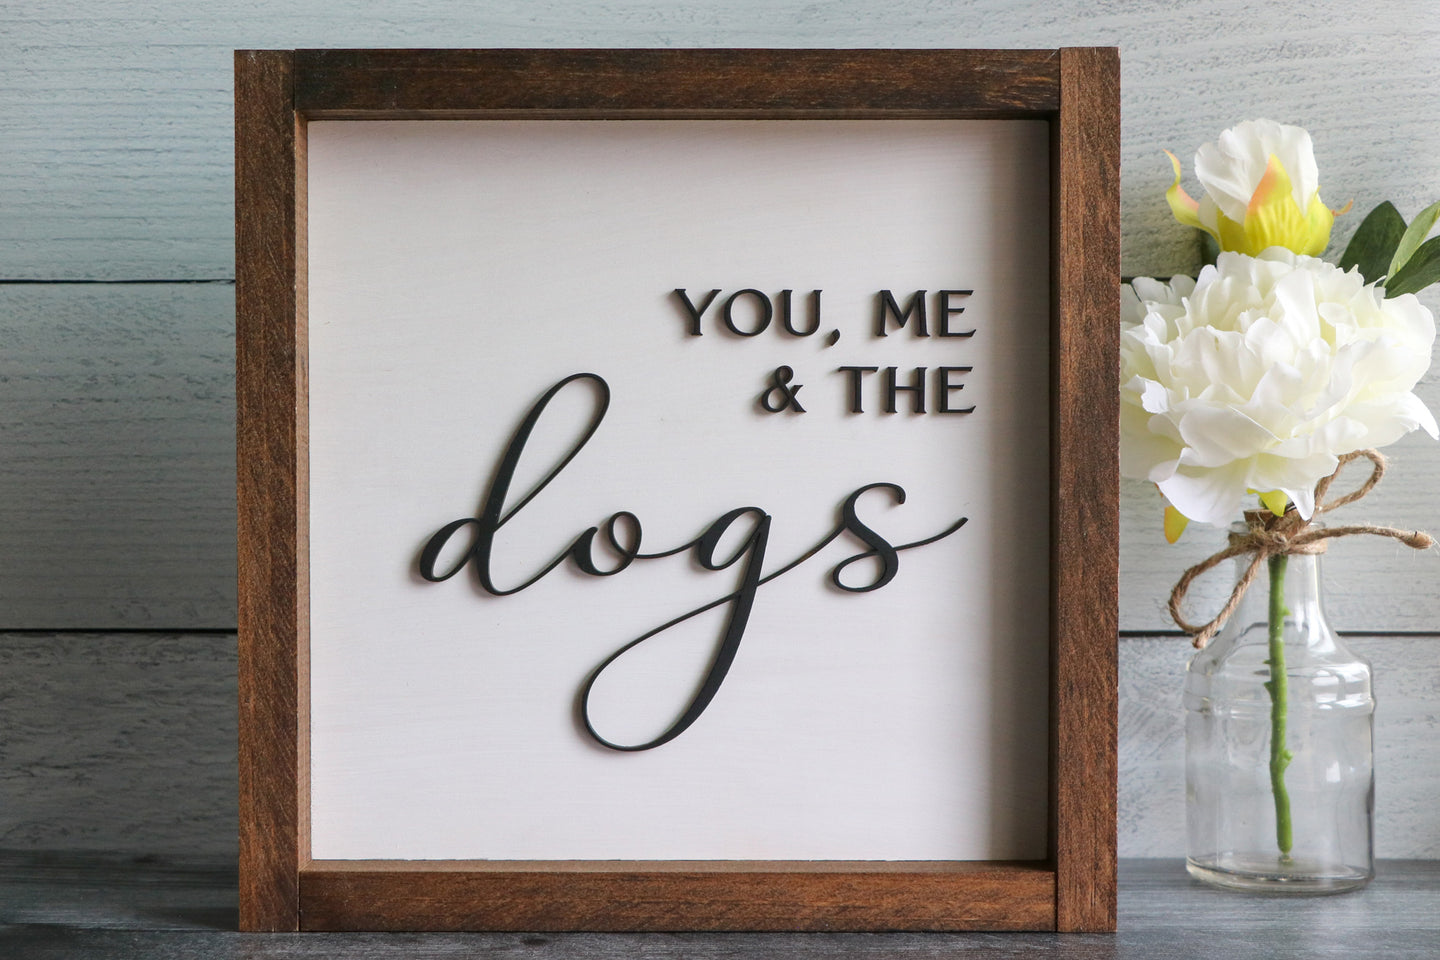 You, Me & The Dogs | Framed Laser Wood Sign | 12x12 | Various Options Available